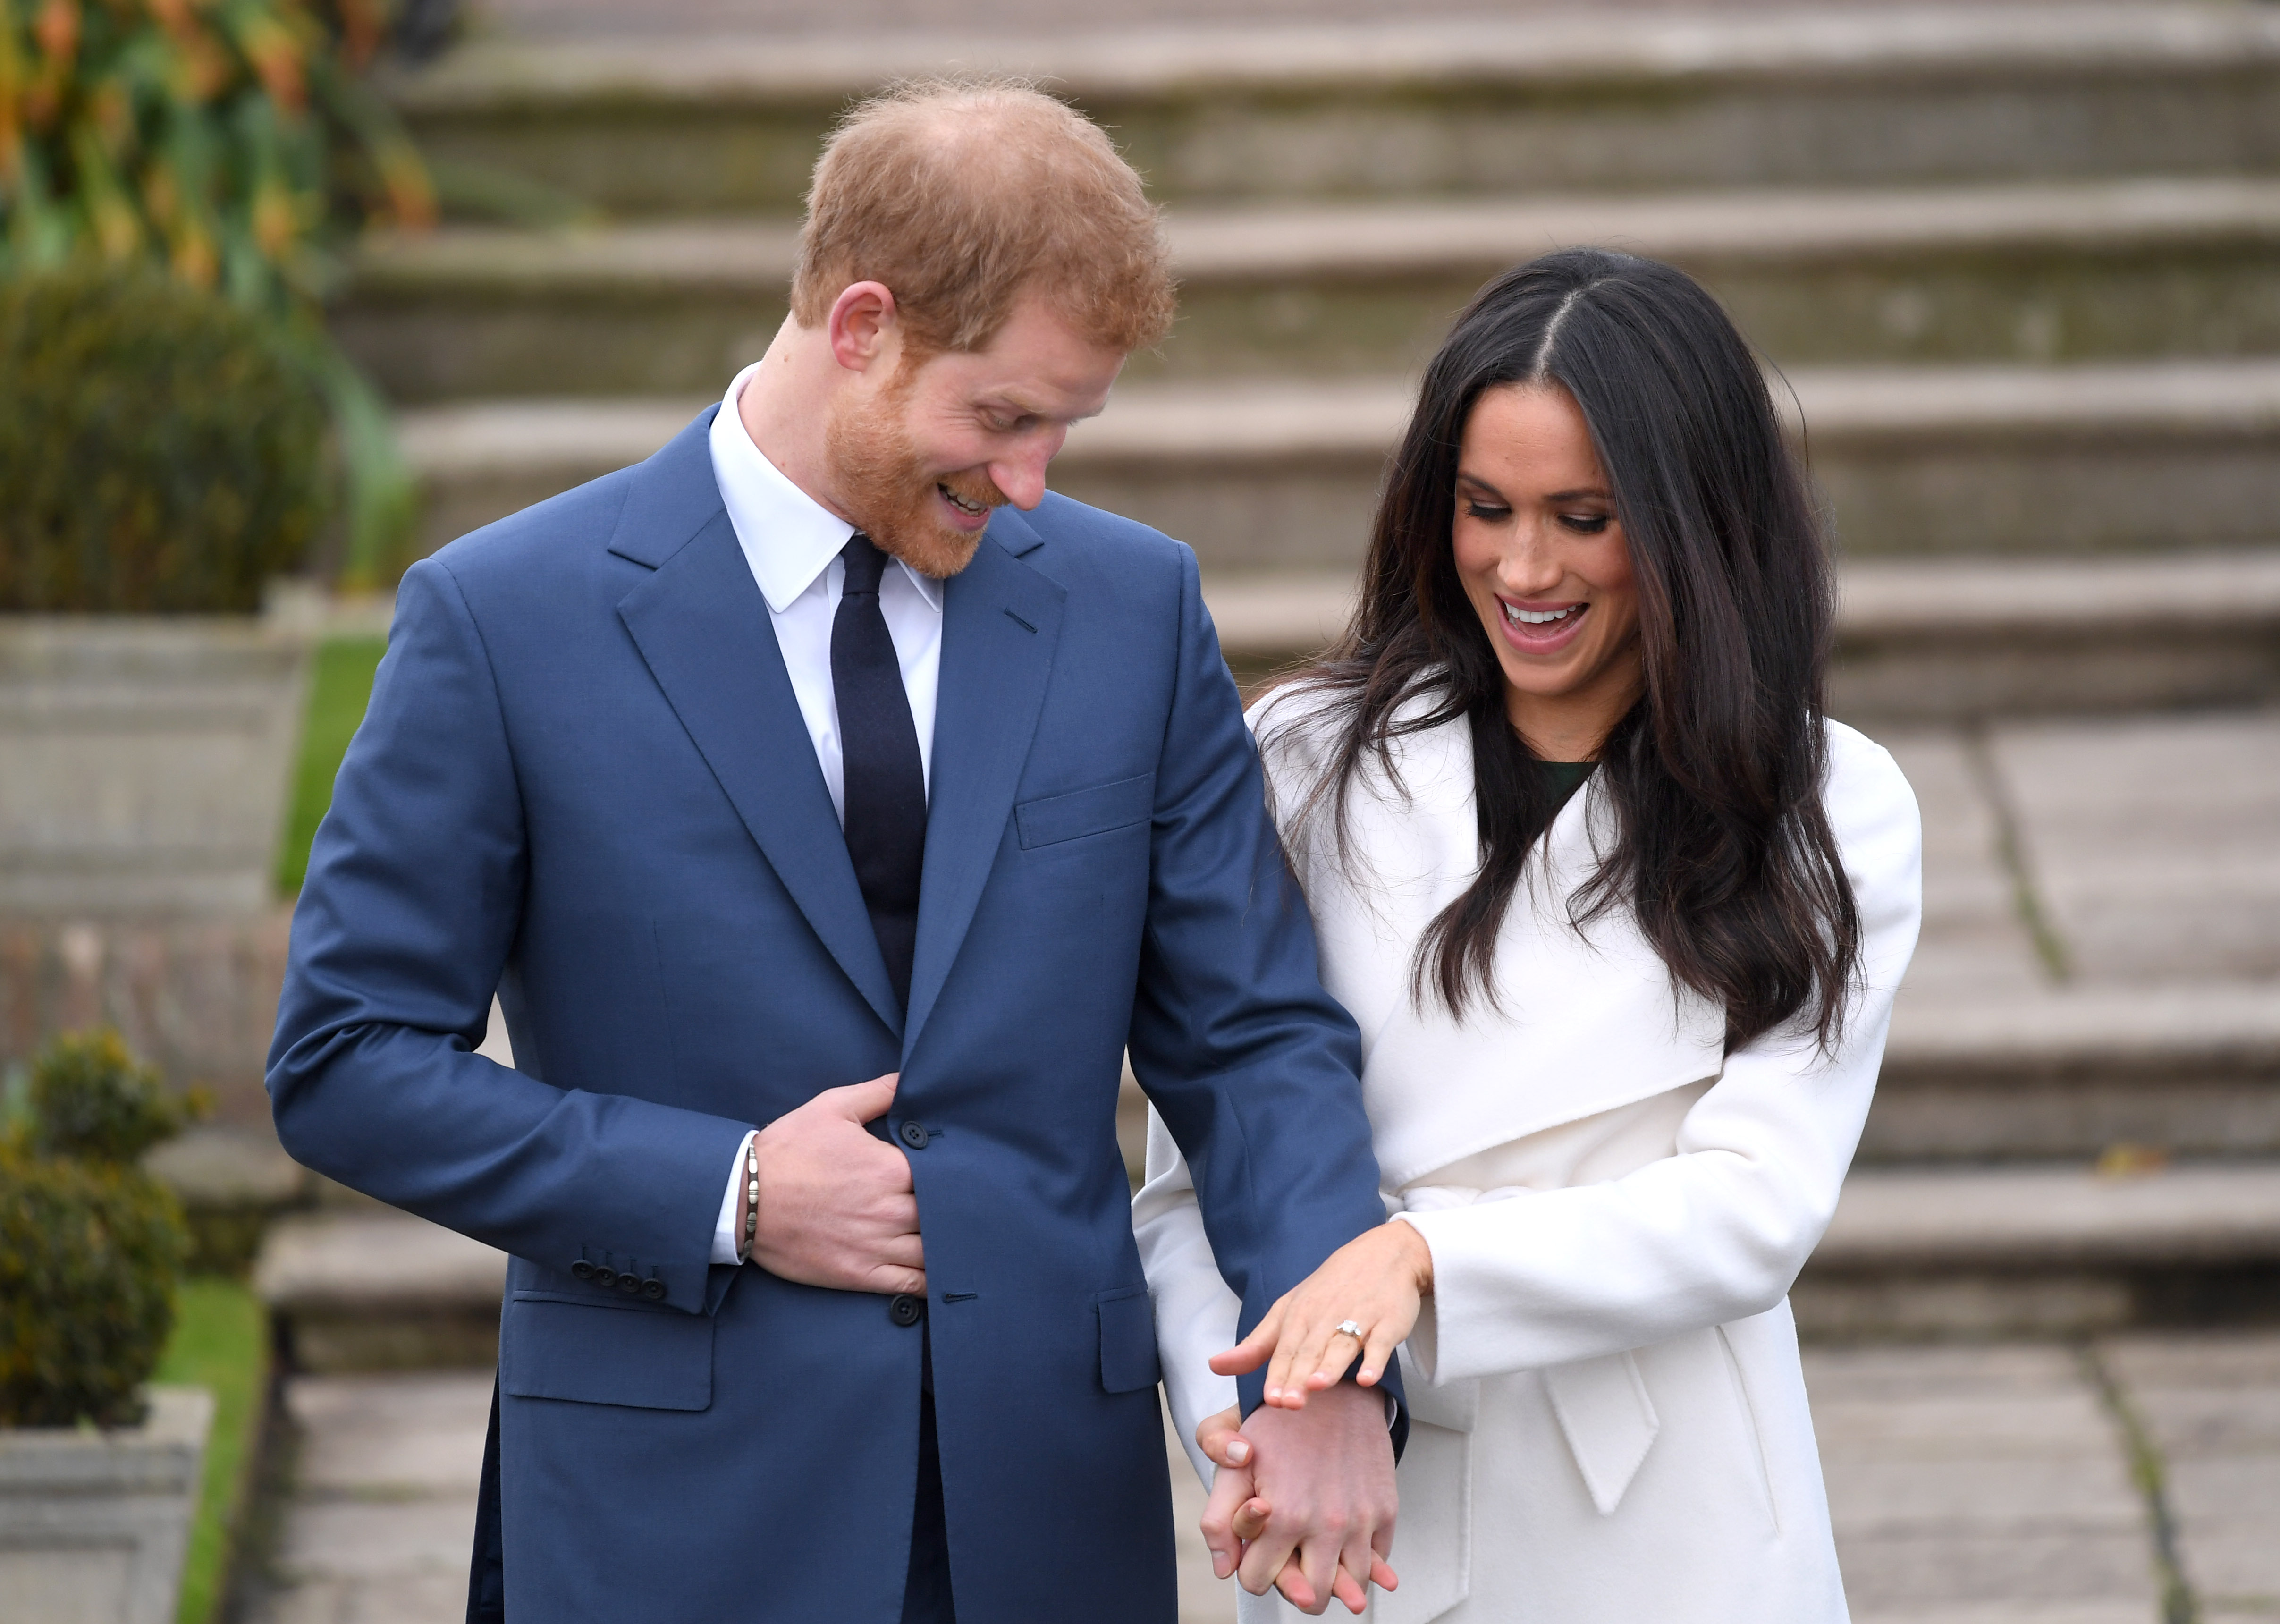 Where To Watch The Royal Wedding.How To Watch The Royal Wedding Your Guide To All The Coverage